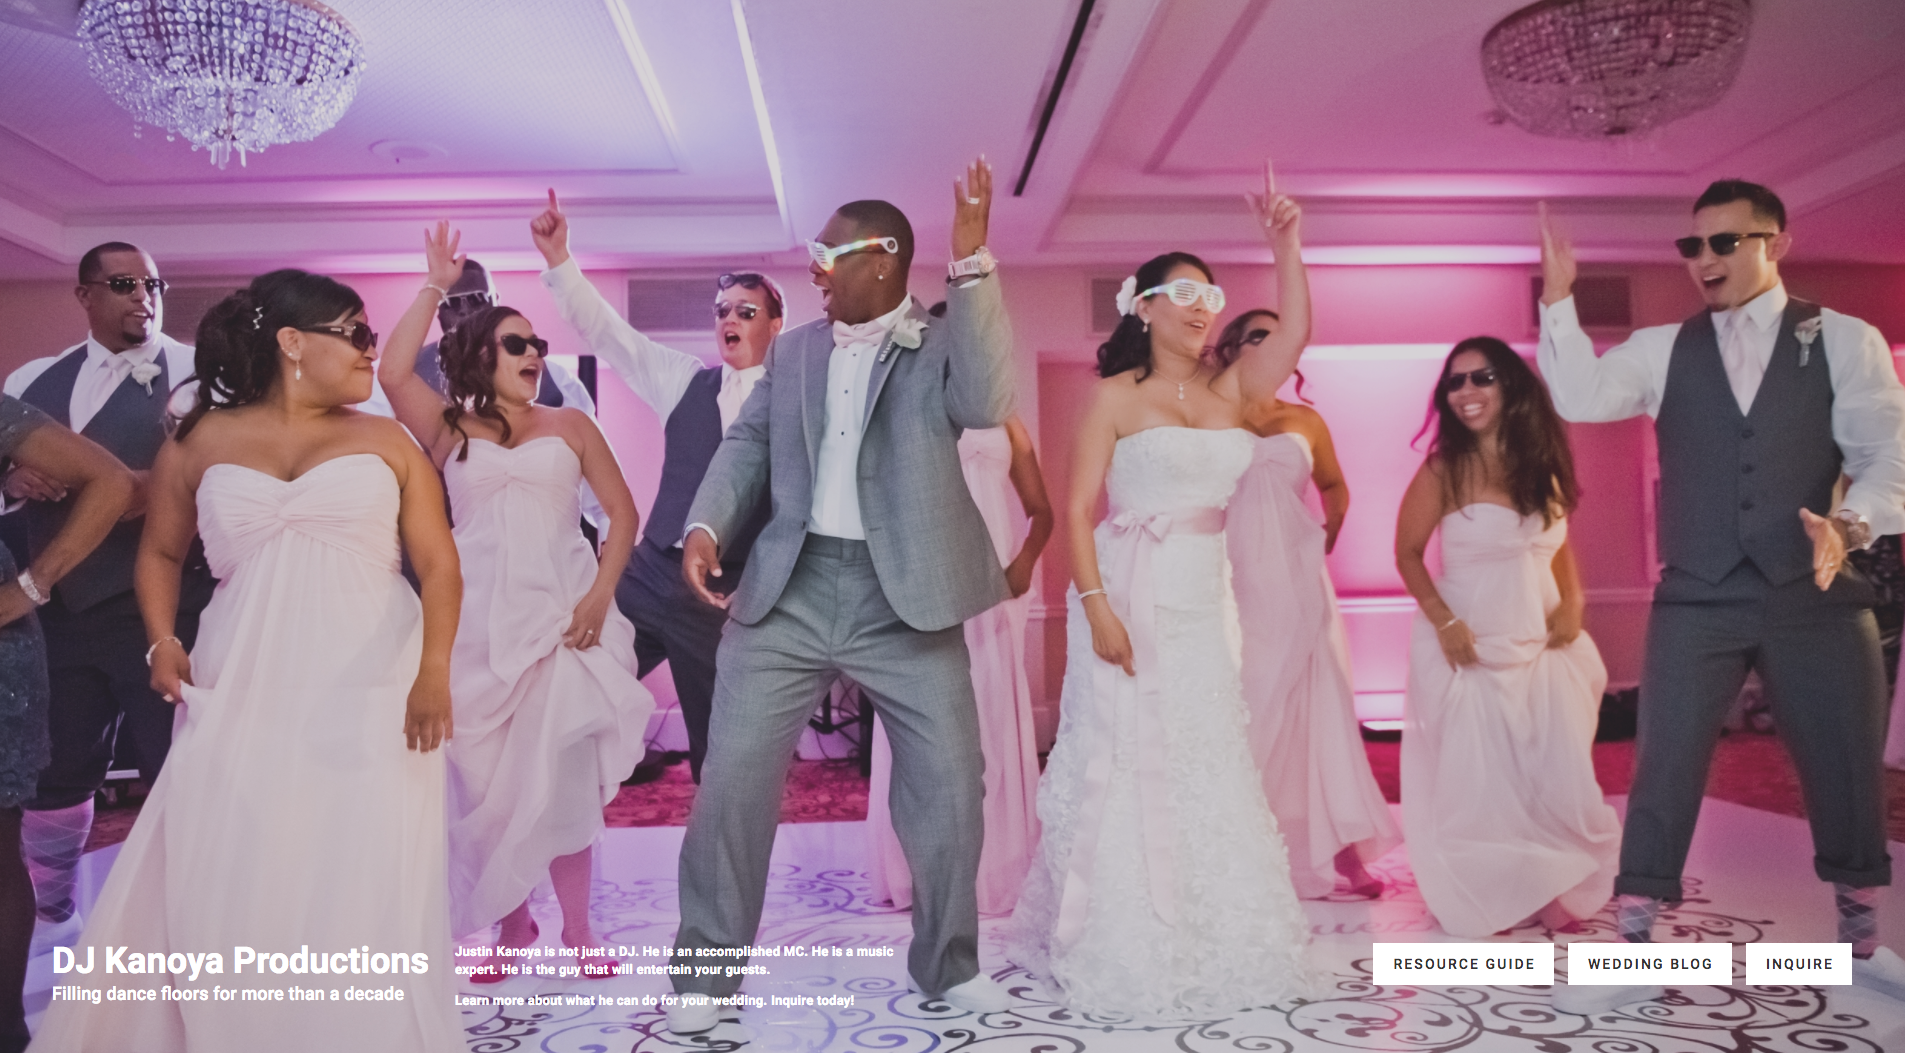 This is an example of a generic wedding landing page created on the DJ Kanoya Productions website.